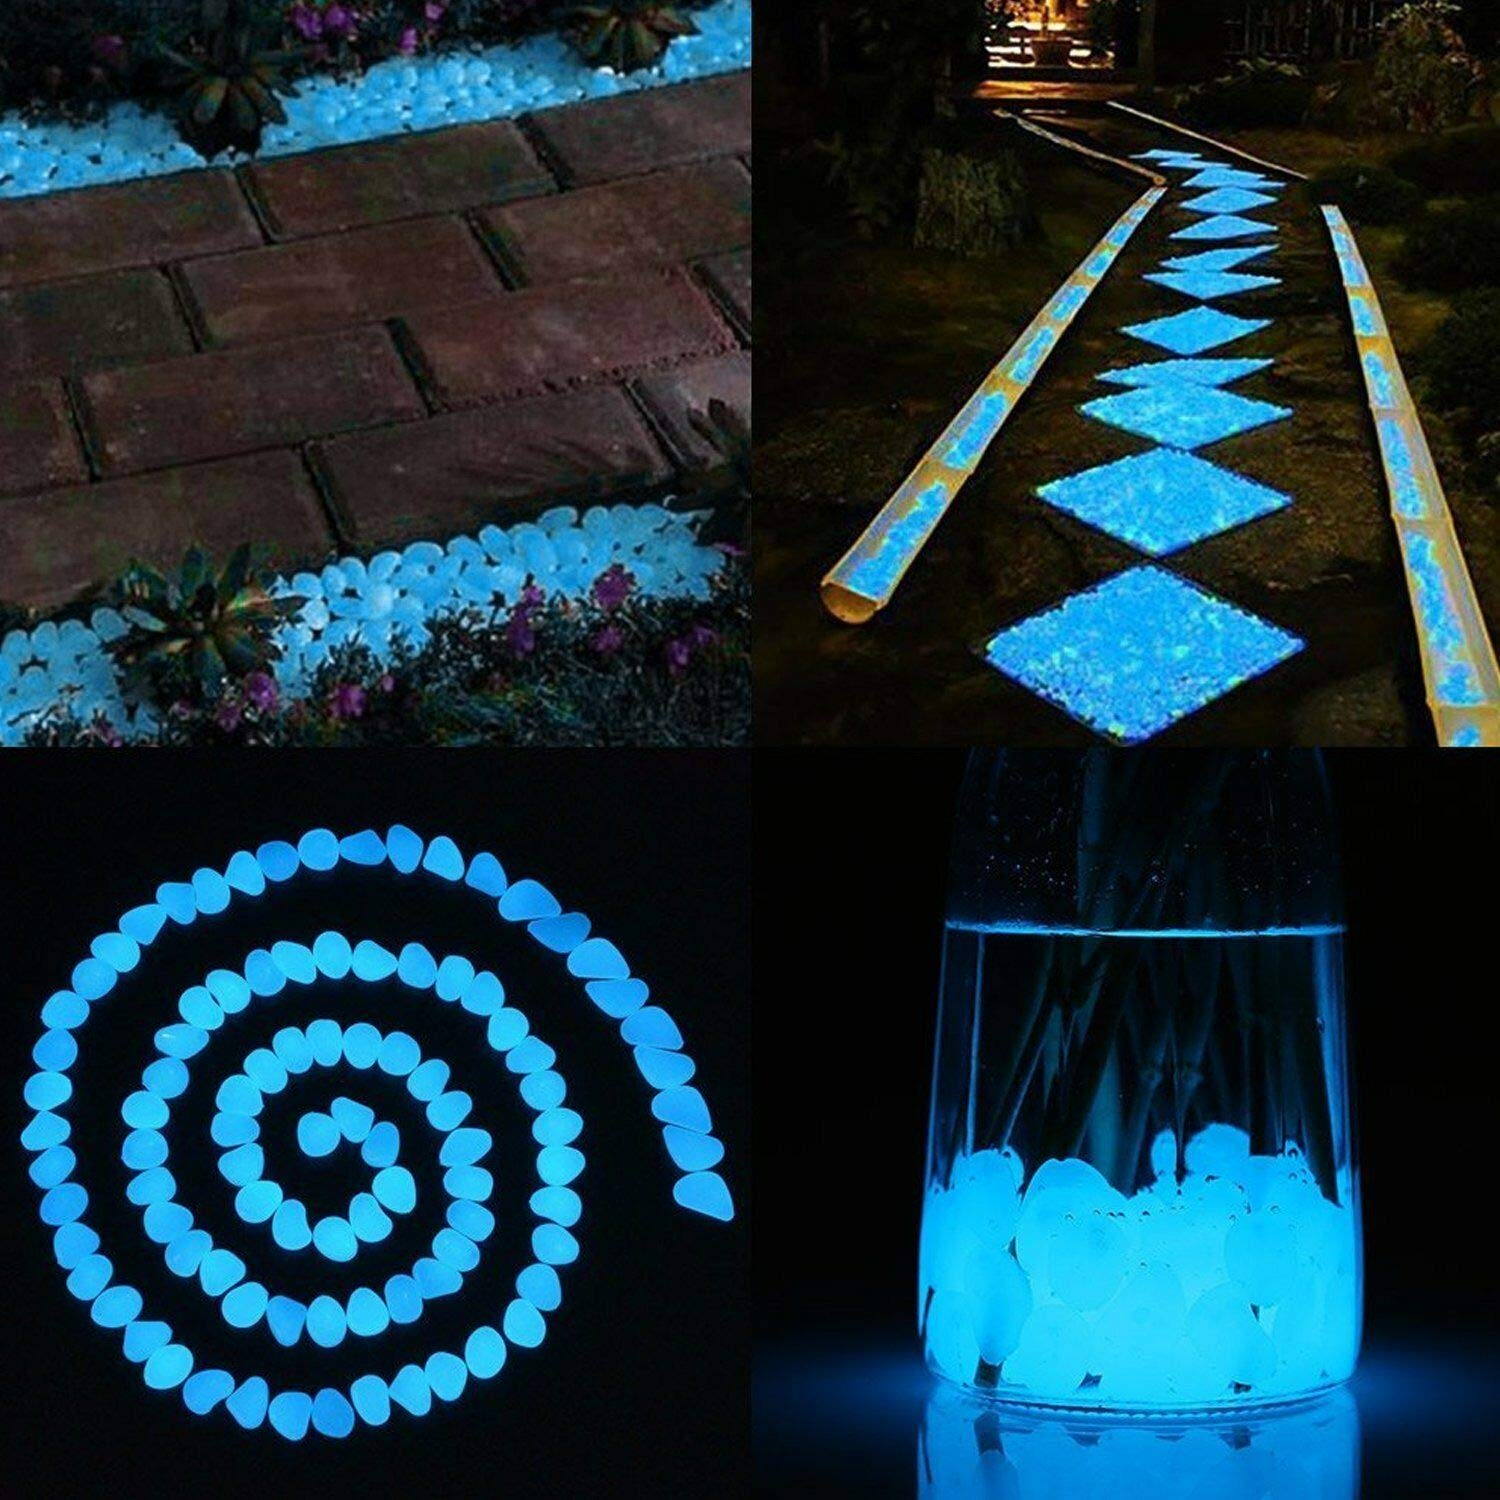 White Garden Pebbles Rocks for Outdoor Yard Grass Window and Fish Tank Decoration ASIBT 500 Pcs Glow in The Dark Stones Walkway